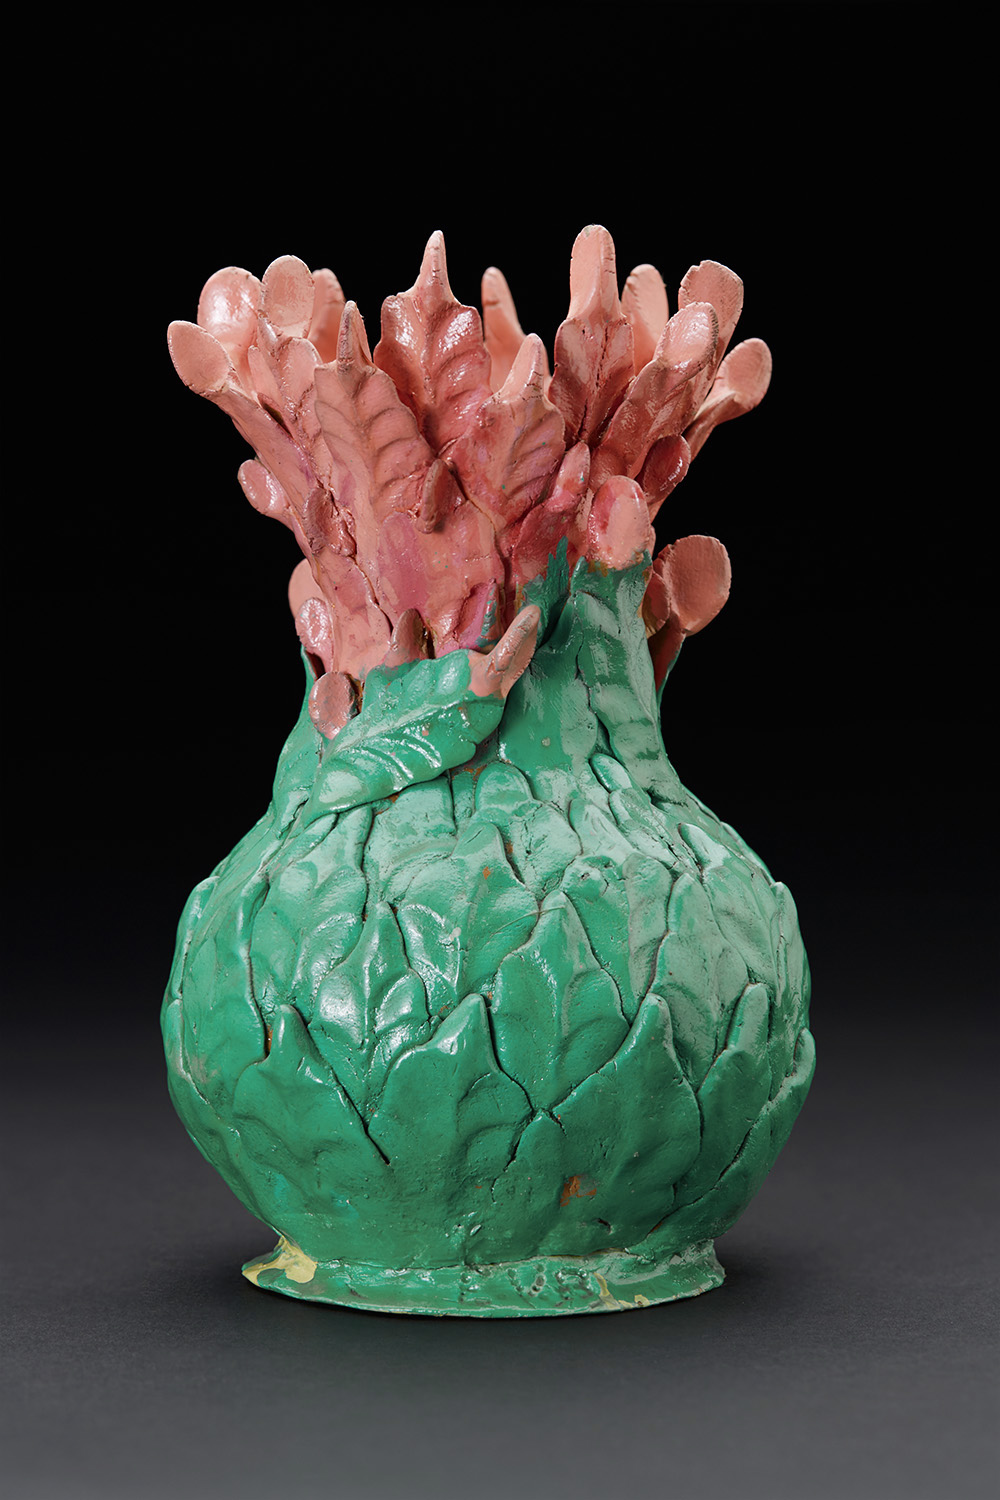 Eugene Von Bruenchenhein,    Untitled  , 1960-1980, Hand dug clay and paint, 7 x 4.5 x 4.5 inches, 17.8 x 11.4 x 11.4 cm, EV 47